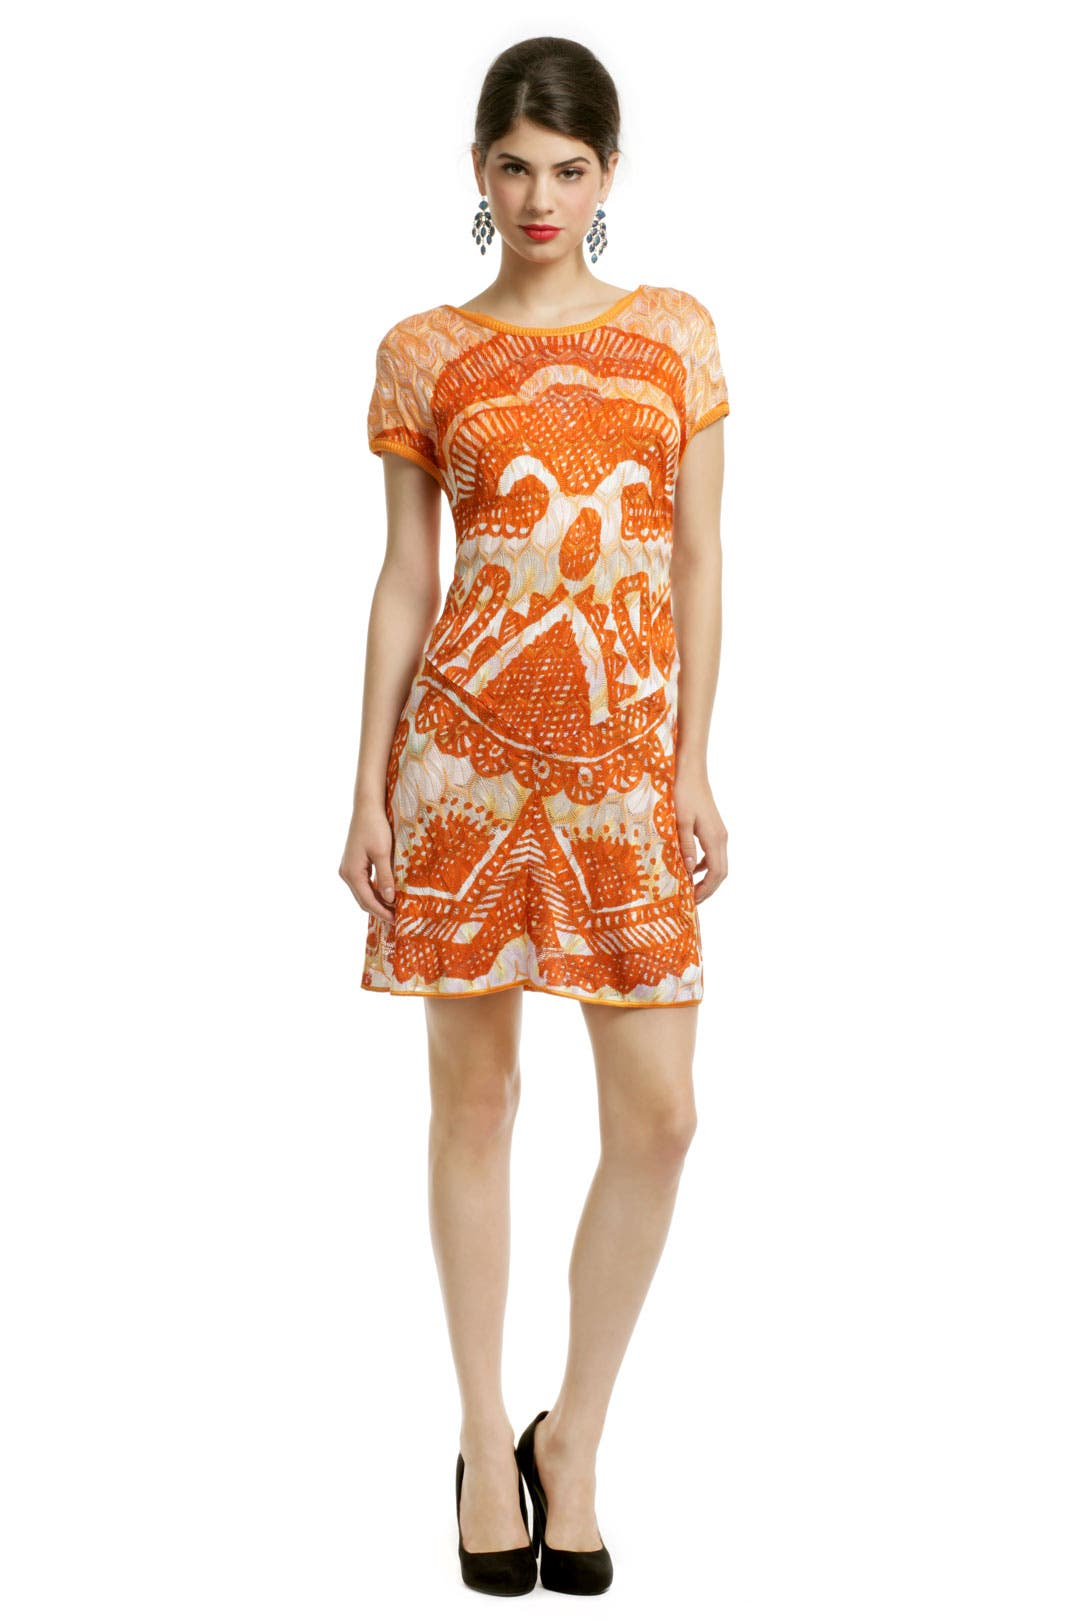 Lara Orange Cap Dress by Missoni